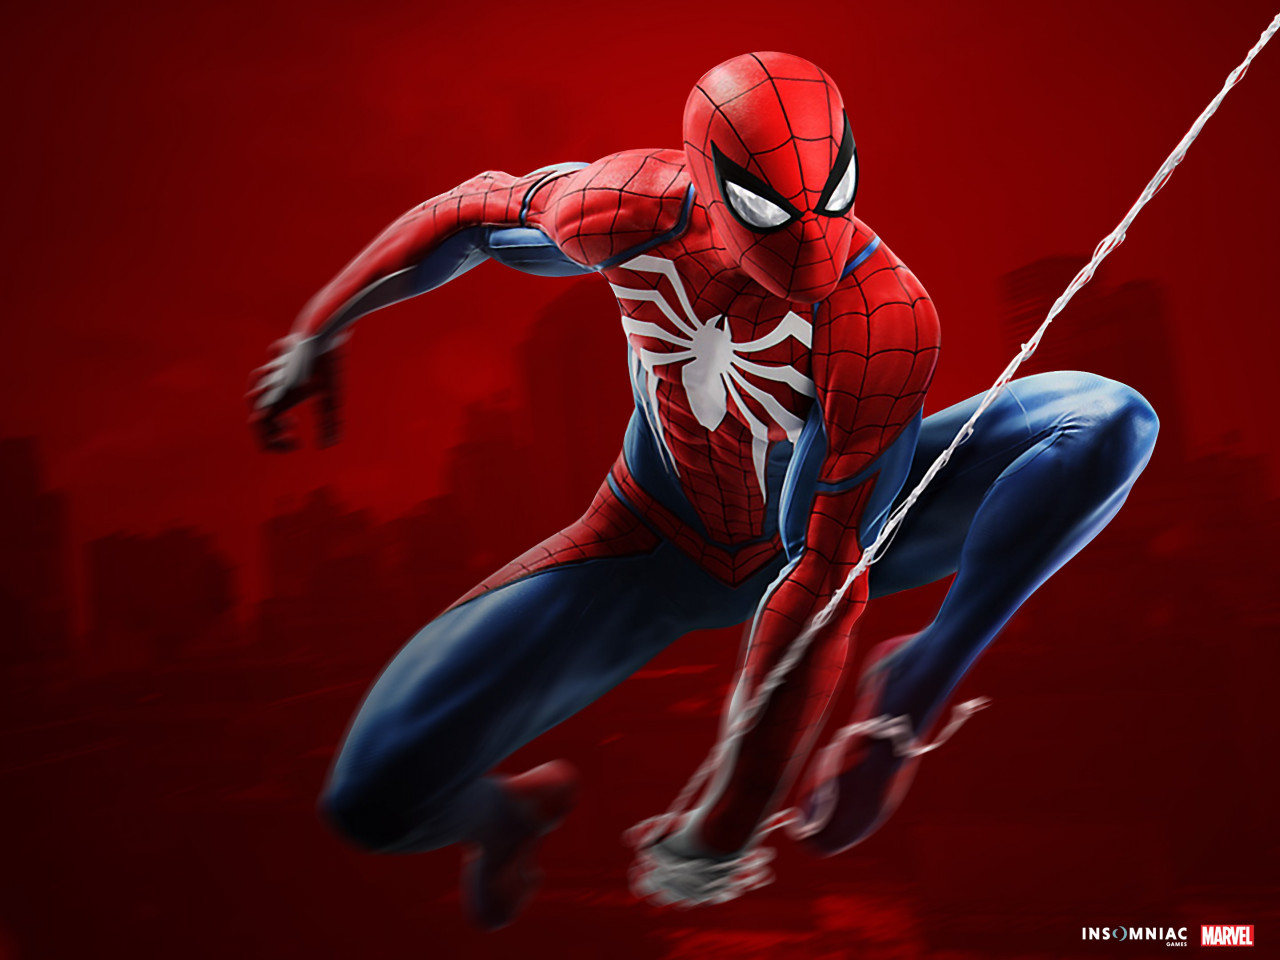 Spider Man game on PS4 wallpaper 1280x960